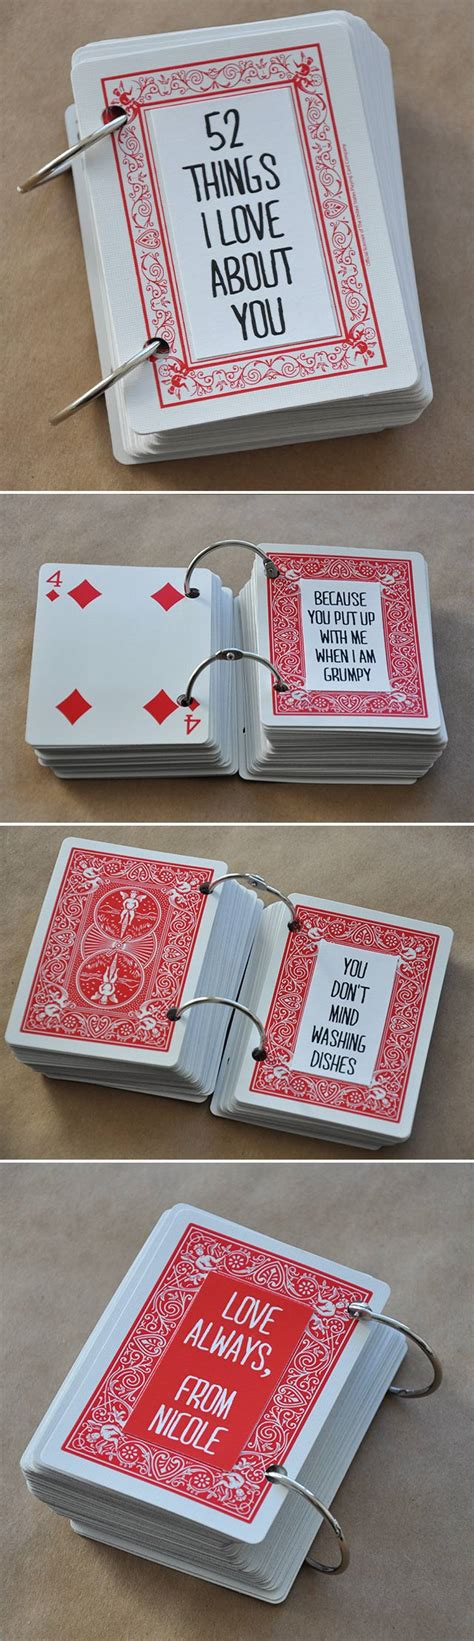 deck of cards valentines template 52 things i about you visualheart creative studio